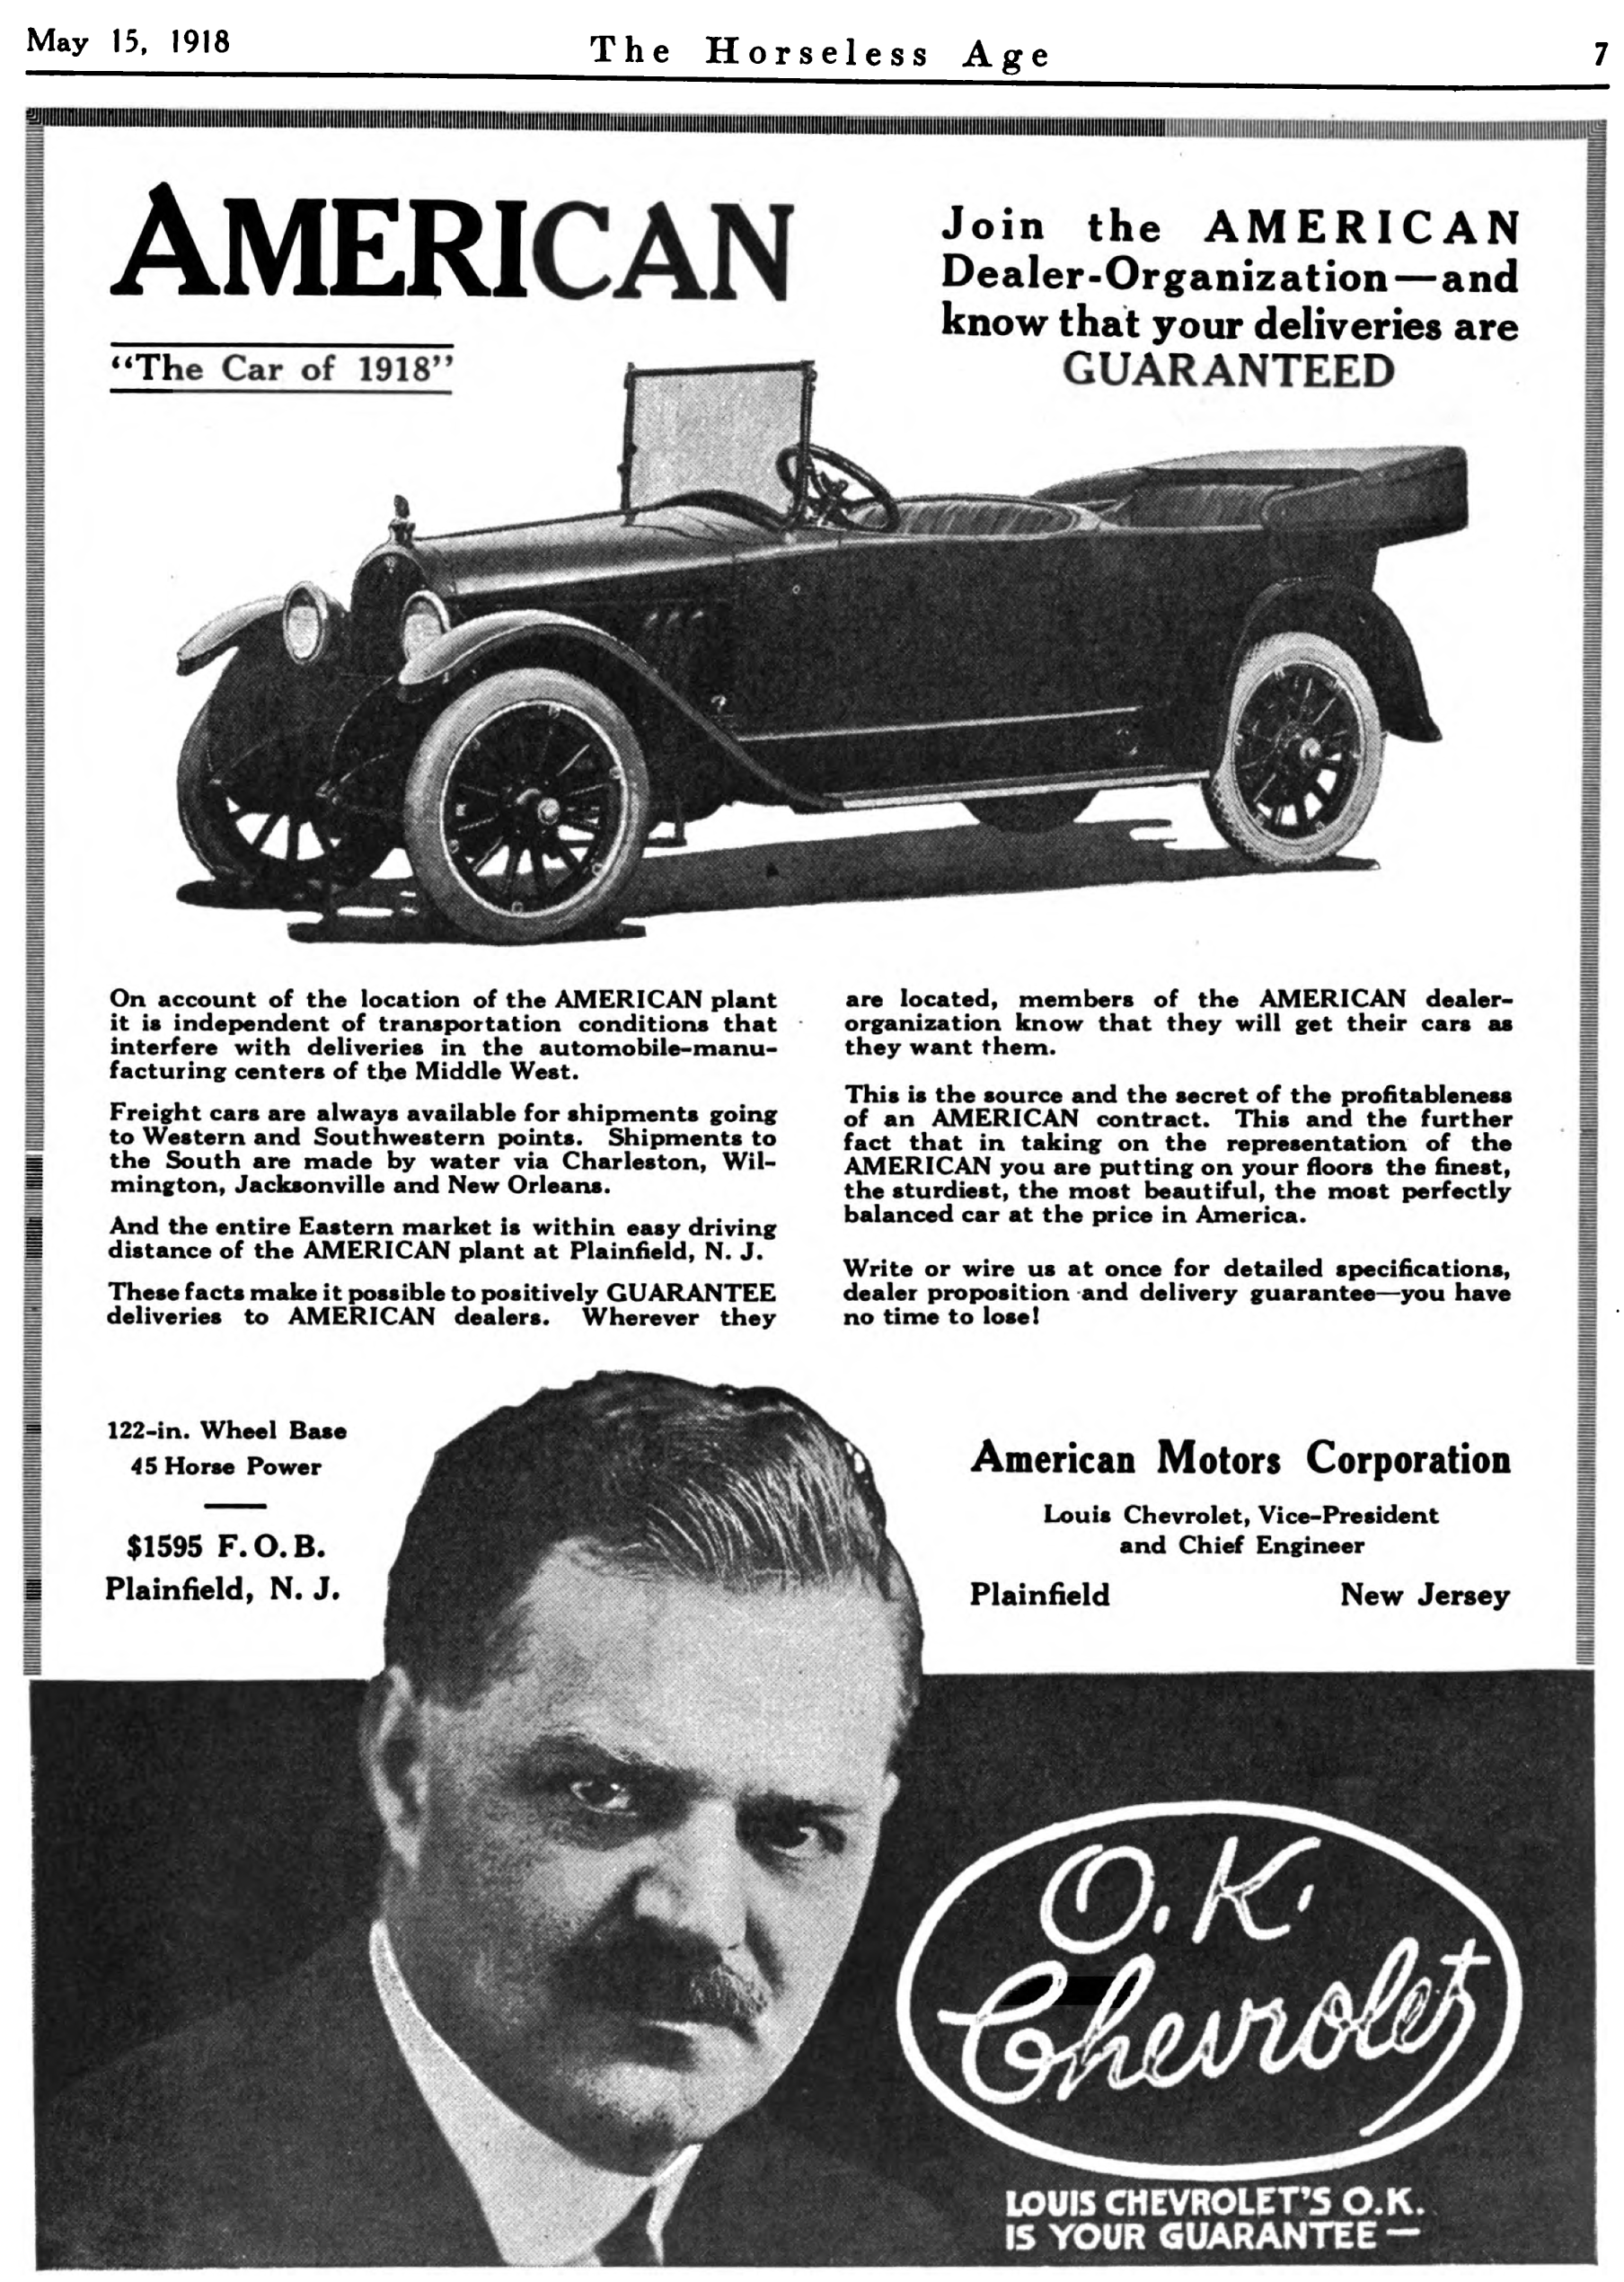 File:American Motors Corporation advert in Horseless Age v44 n4 1918 ...